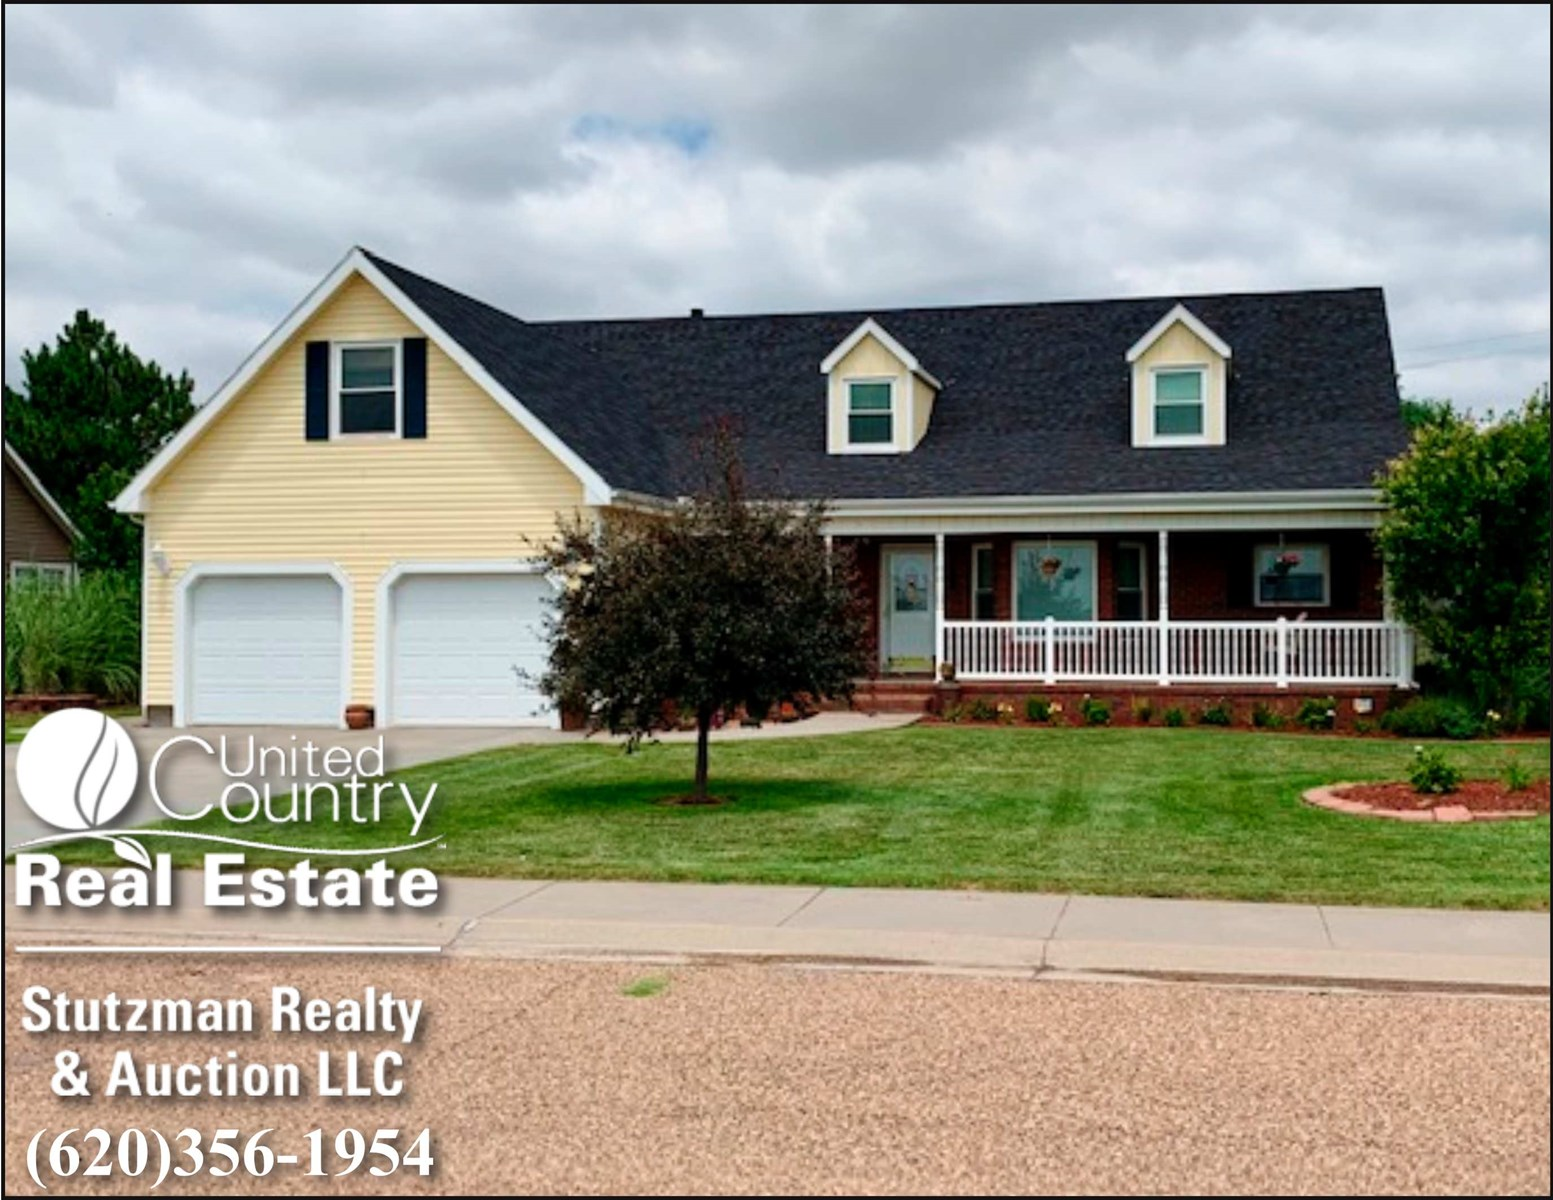 CAPE CODE STYLE HOME FOR SALE IN ULYSSES, KS